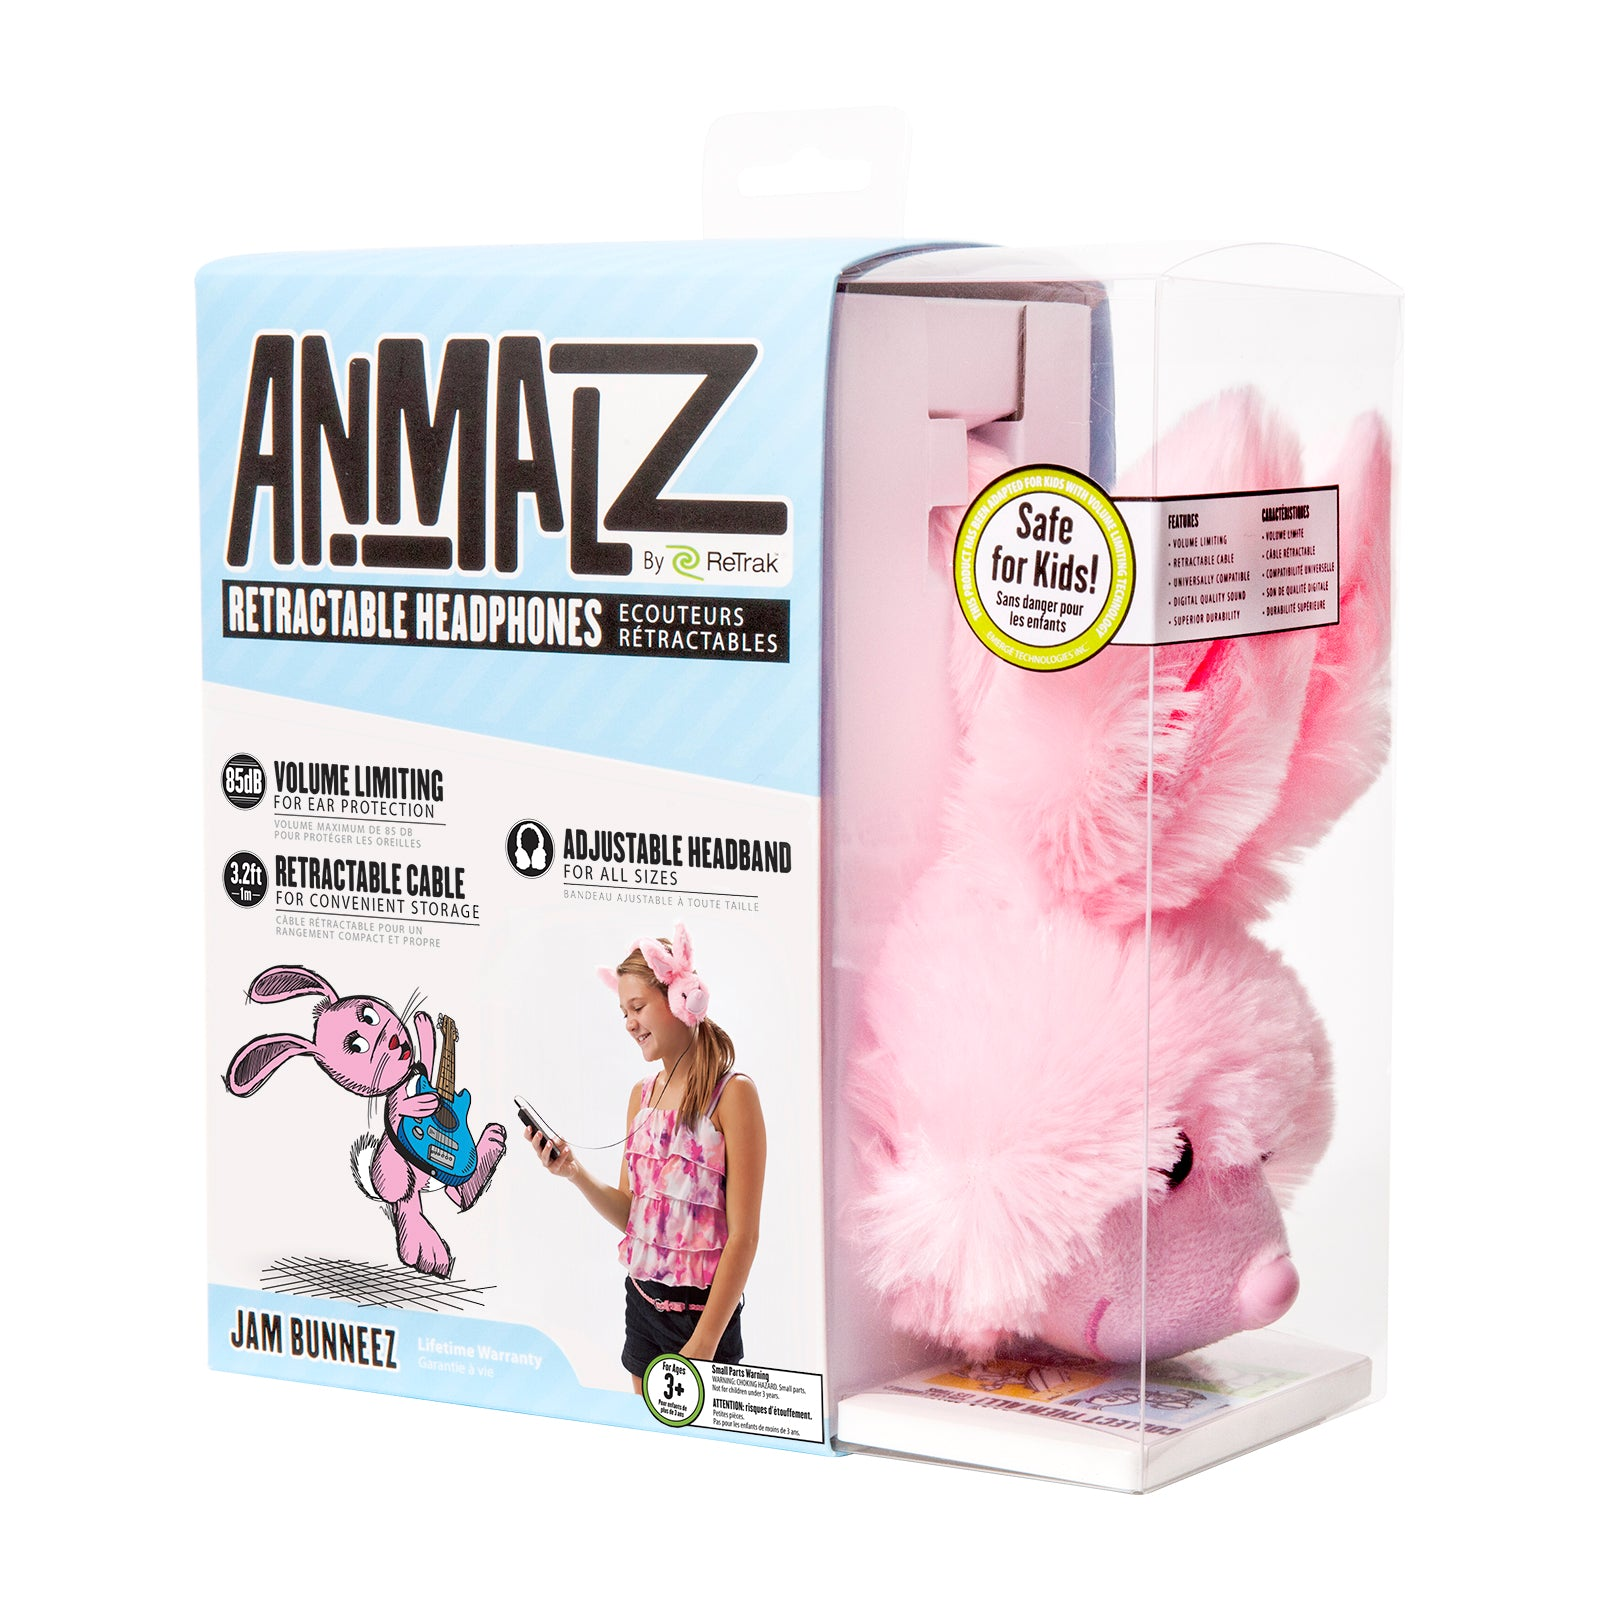 Animalz Ear Headphones Bunny | Headphones for Kids | Retractable Cord